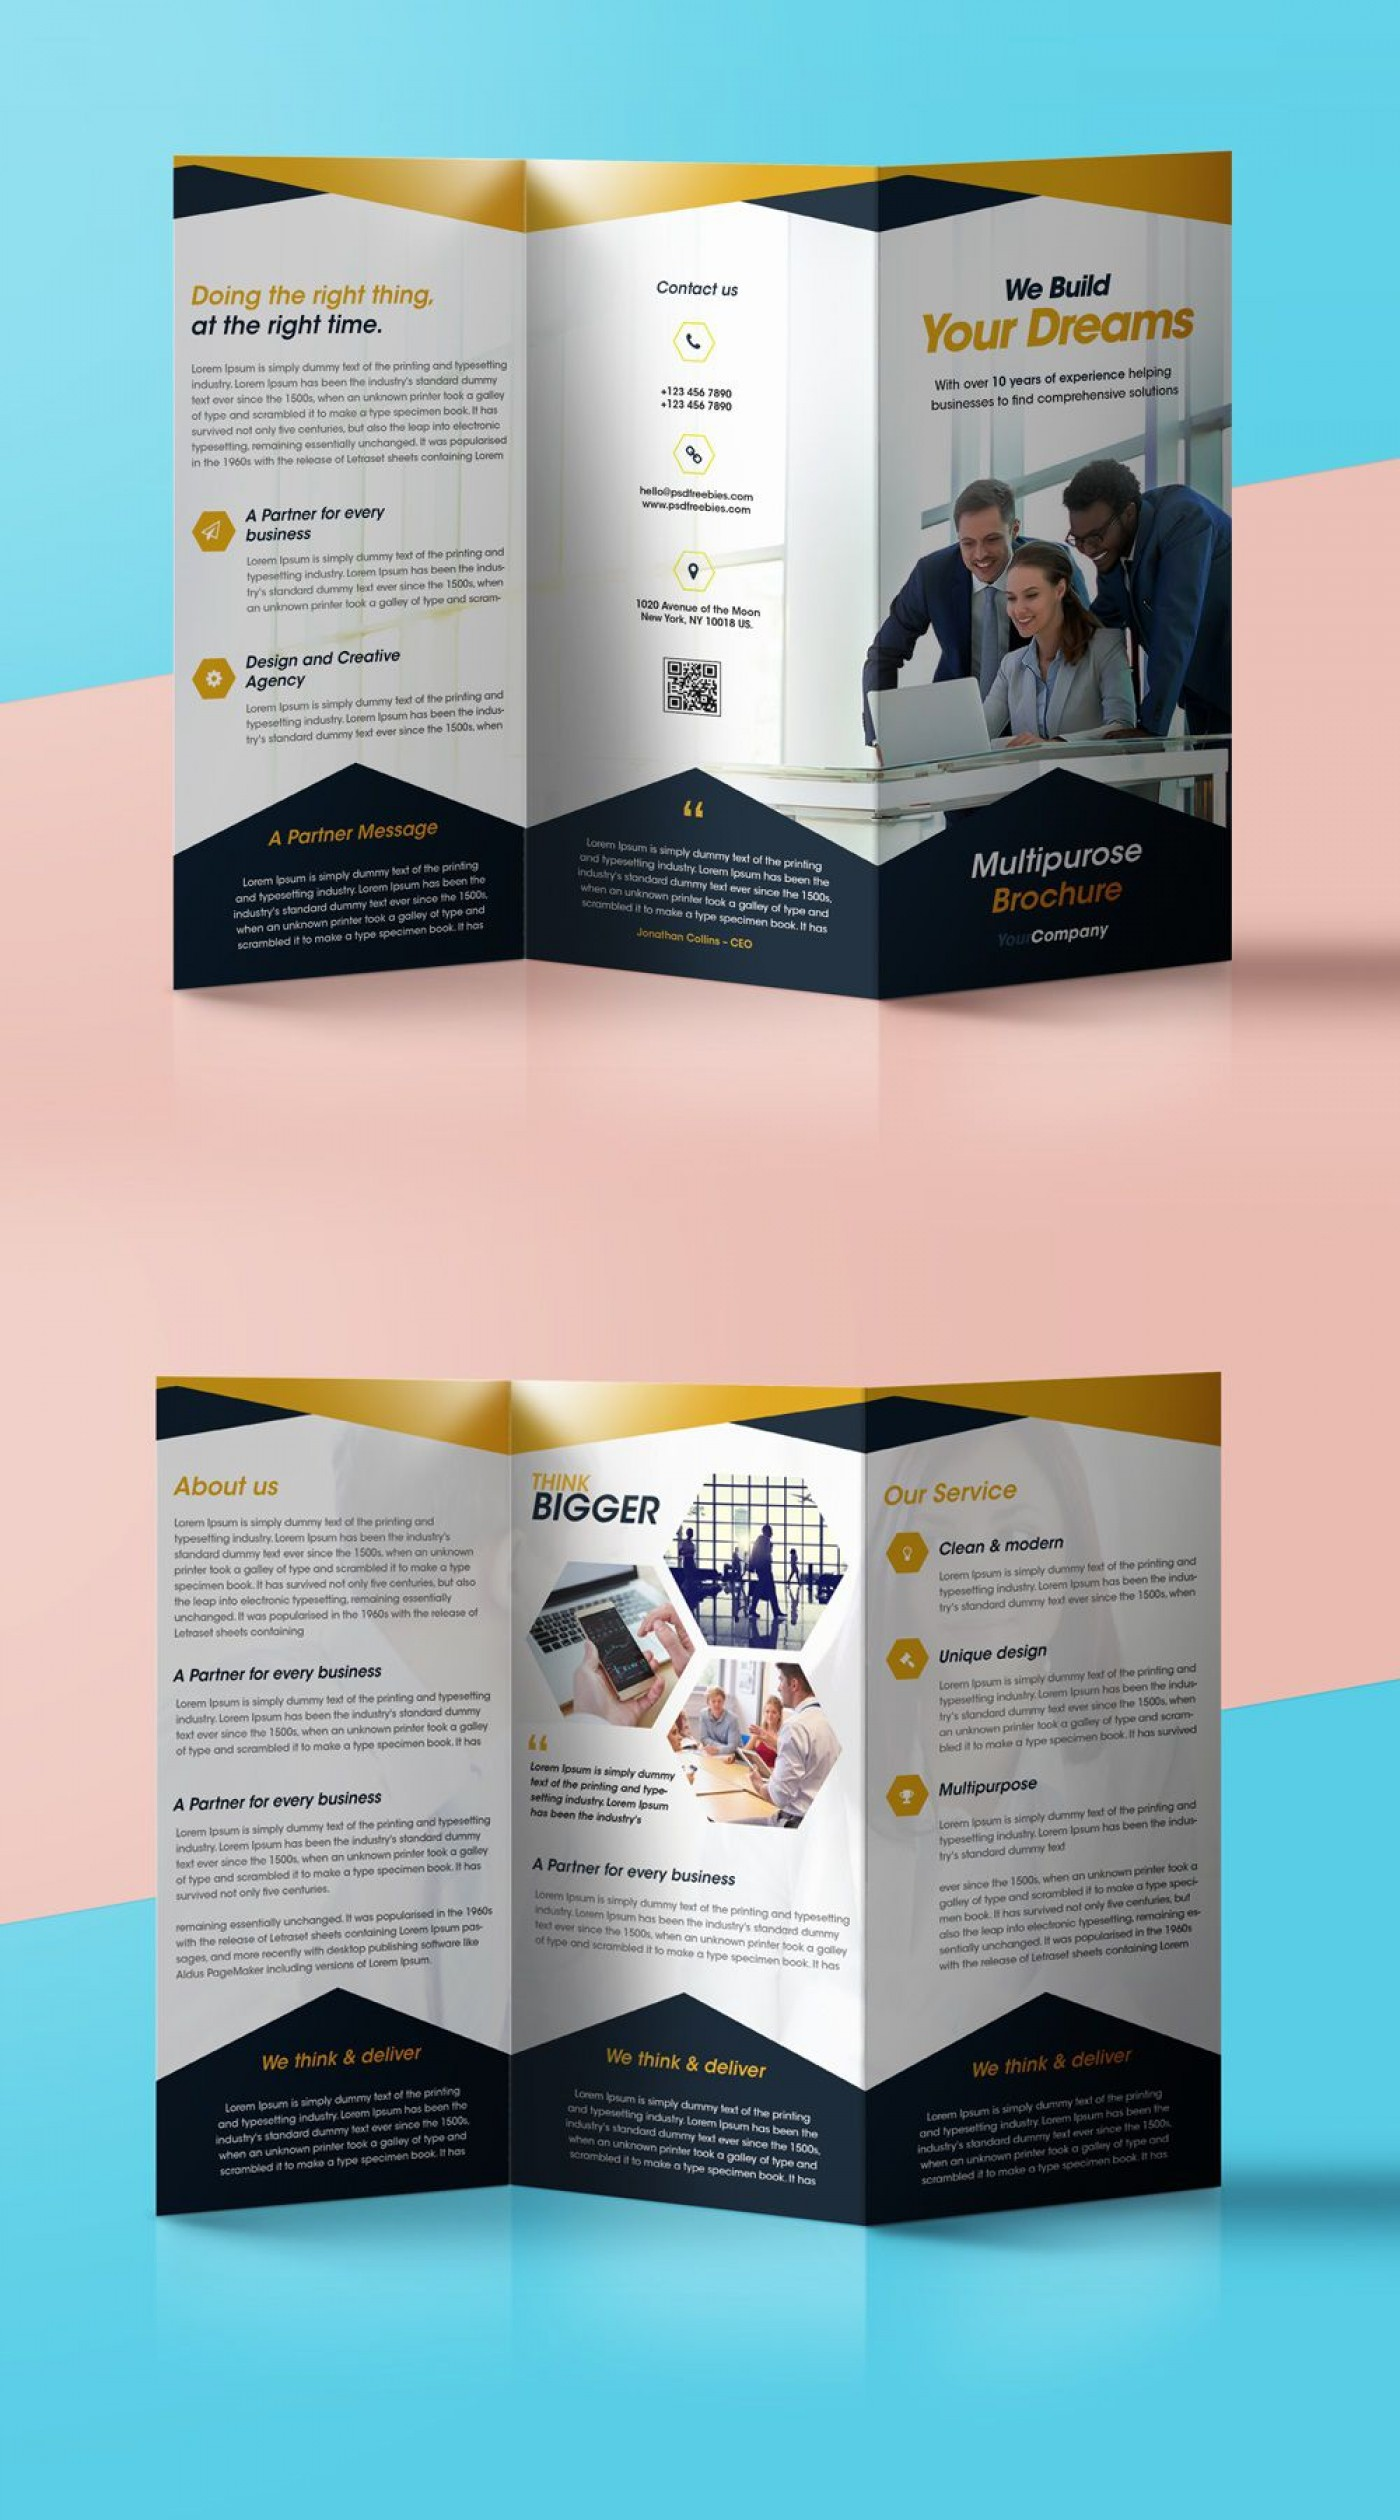 006 Incredible 3 Fold Brochure Template High Def  For Free1400